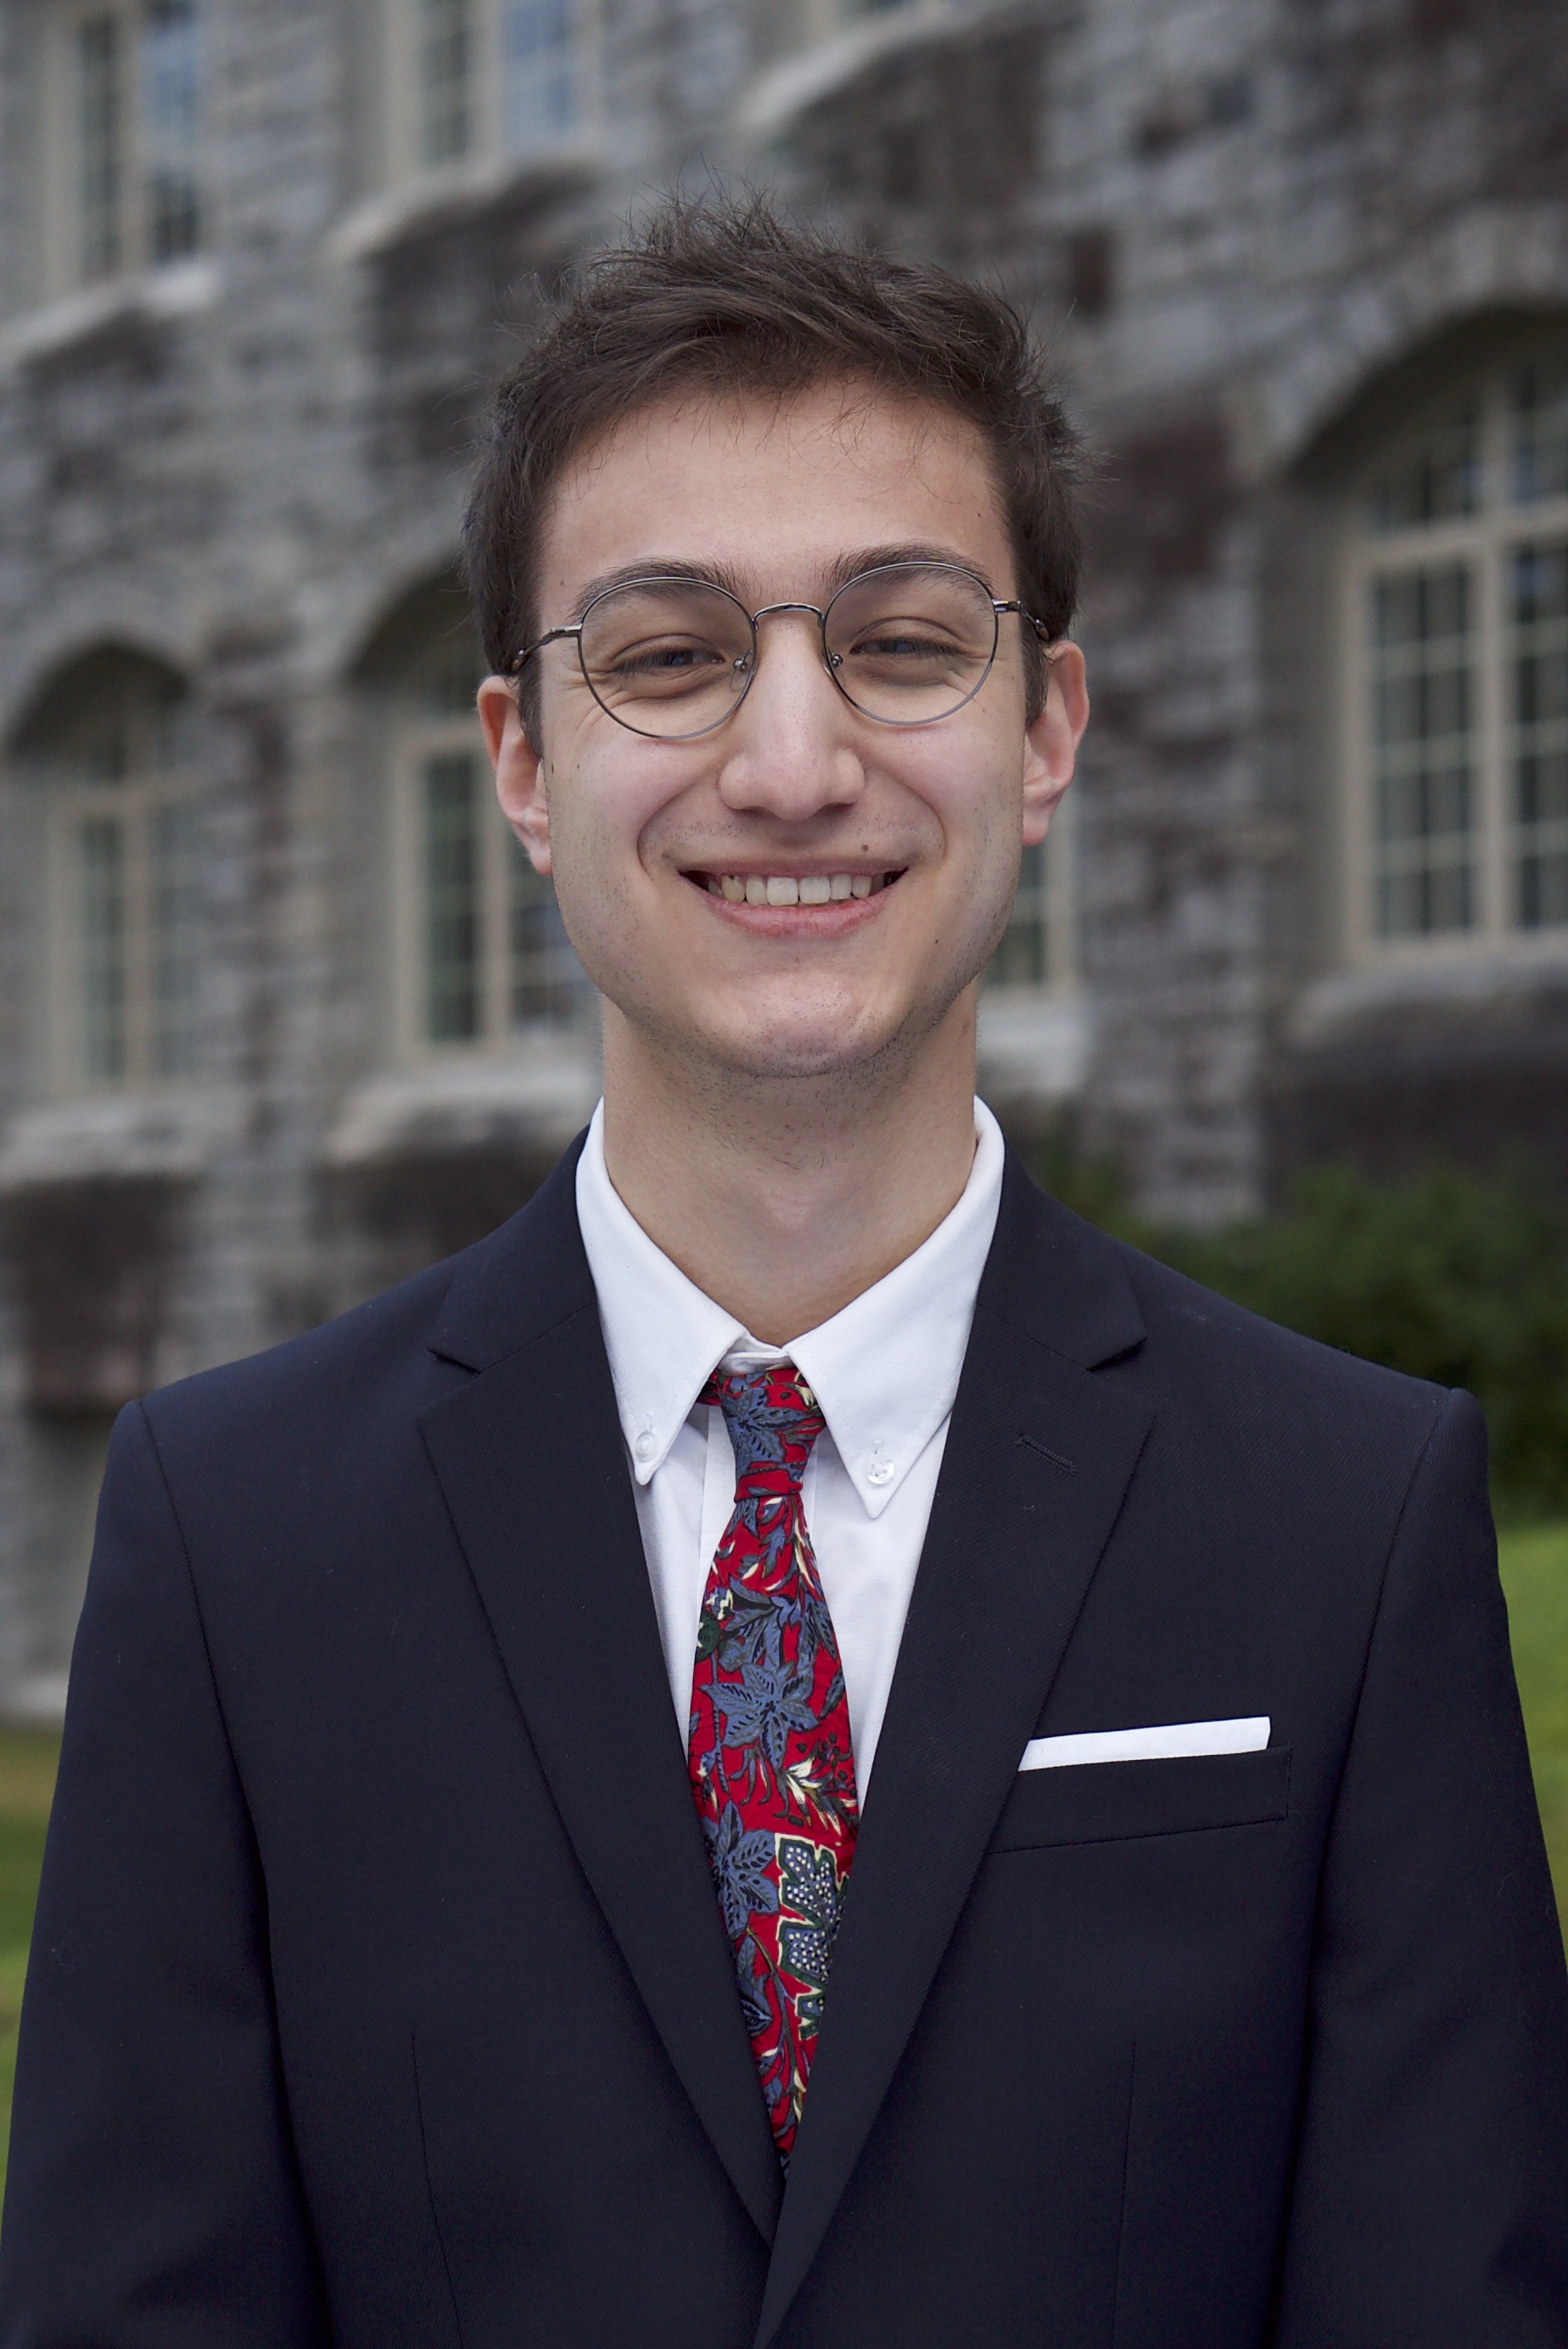 Noah Levy, Associate Editor - Noah is a fourth year UBC student majoring in international relations with an English minor. Drawing from his experience as an Associate Editor with the McGill Pre-Law Review, Communications Director with the BC Newcomer Camp, and Marketing and Communications Coordinator with Reconciliation Canada, Noah is very excited to join the UBC Moot Court team. Noah is especially excited to contribute towards a competition as valuable as Moot Court; mooting is an amazing opportunity for undergraduates across faculties to explore their interest in law, to develop written and oral advocacy skills, and to meet great people. In his spare time, Noah enjoys reading, playing poker, spending time with friends, and seeing his favourite artists play live. He also enjoys playing the piano and is always learning new music, having previously worked six years as a piano tutor. Noah's dream is to build a personal injury law firm nestled in the plush and idyllic meadows of rural Vermont.